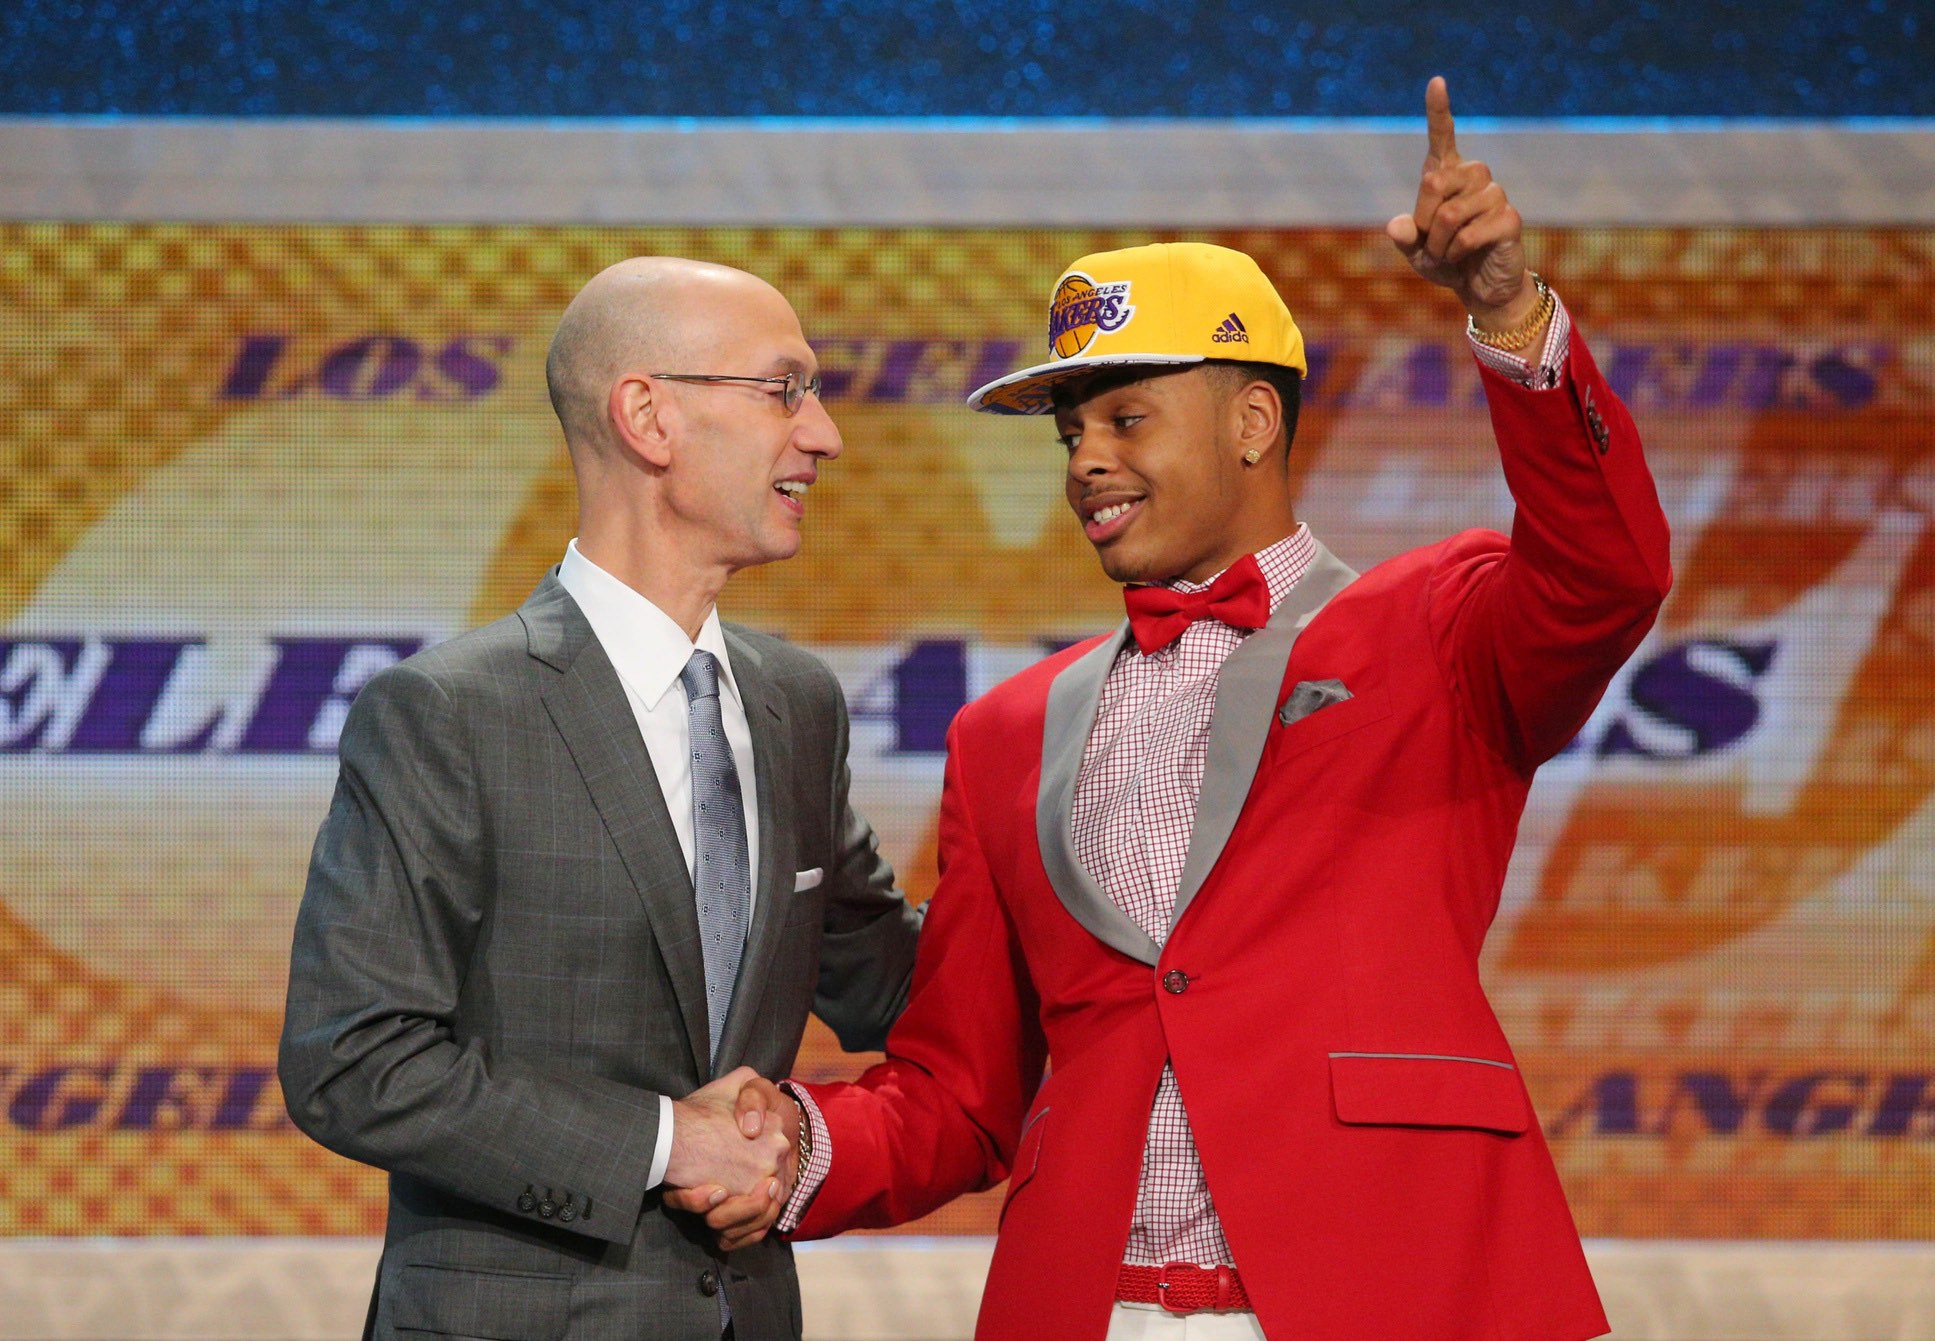 D'Angelo Russell went second overall in the 2015 NBA Draft following an All-American season in Columbus.